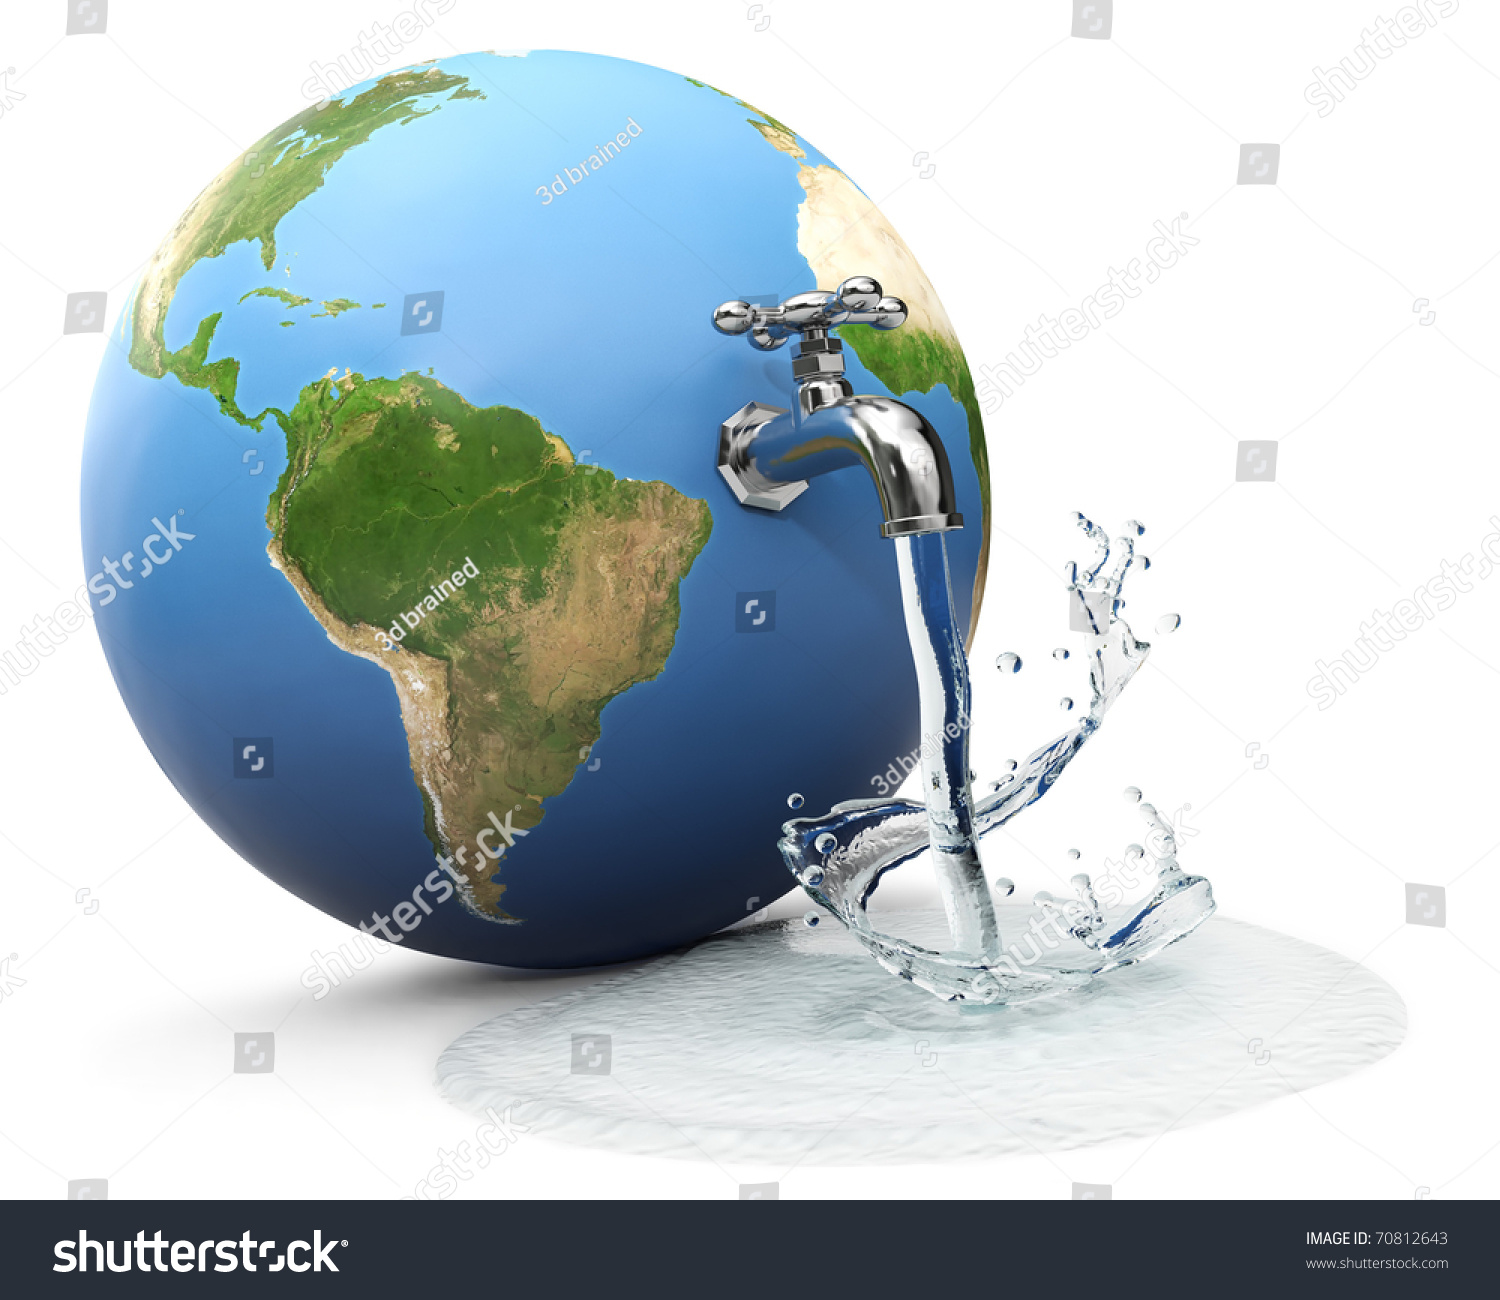 Terre Et Eaux Le Mans Inside The Earth Diagram Of Earth39s Interior Globe With Water Tap Dropping Stock Photo